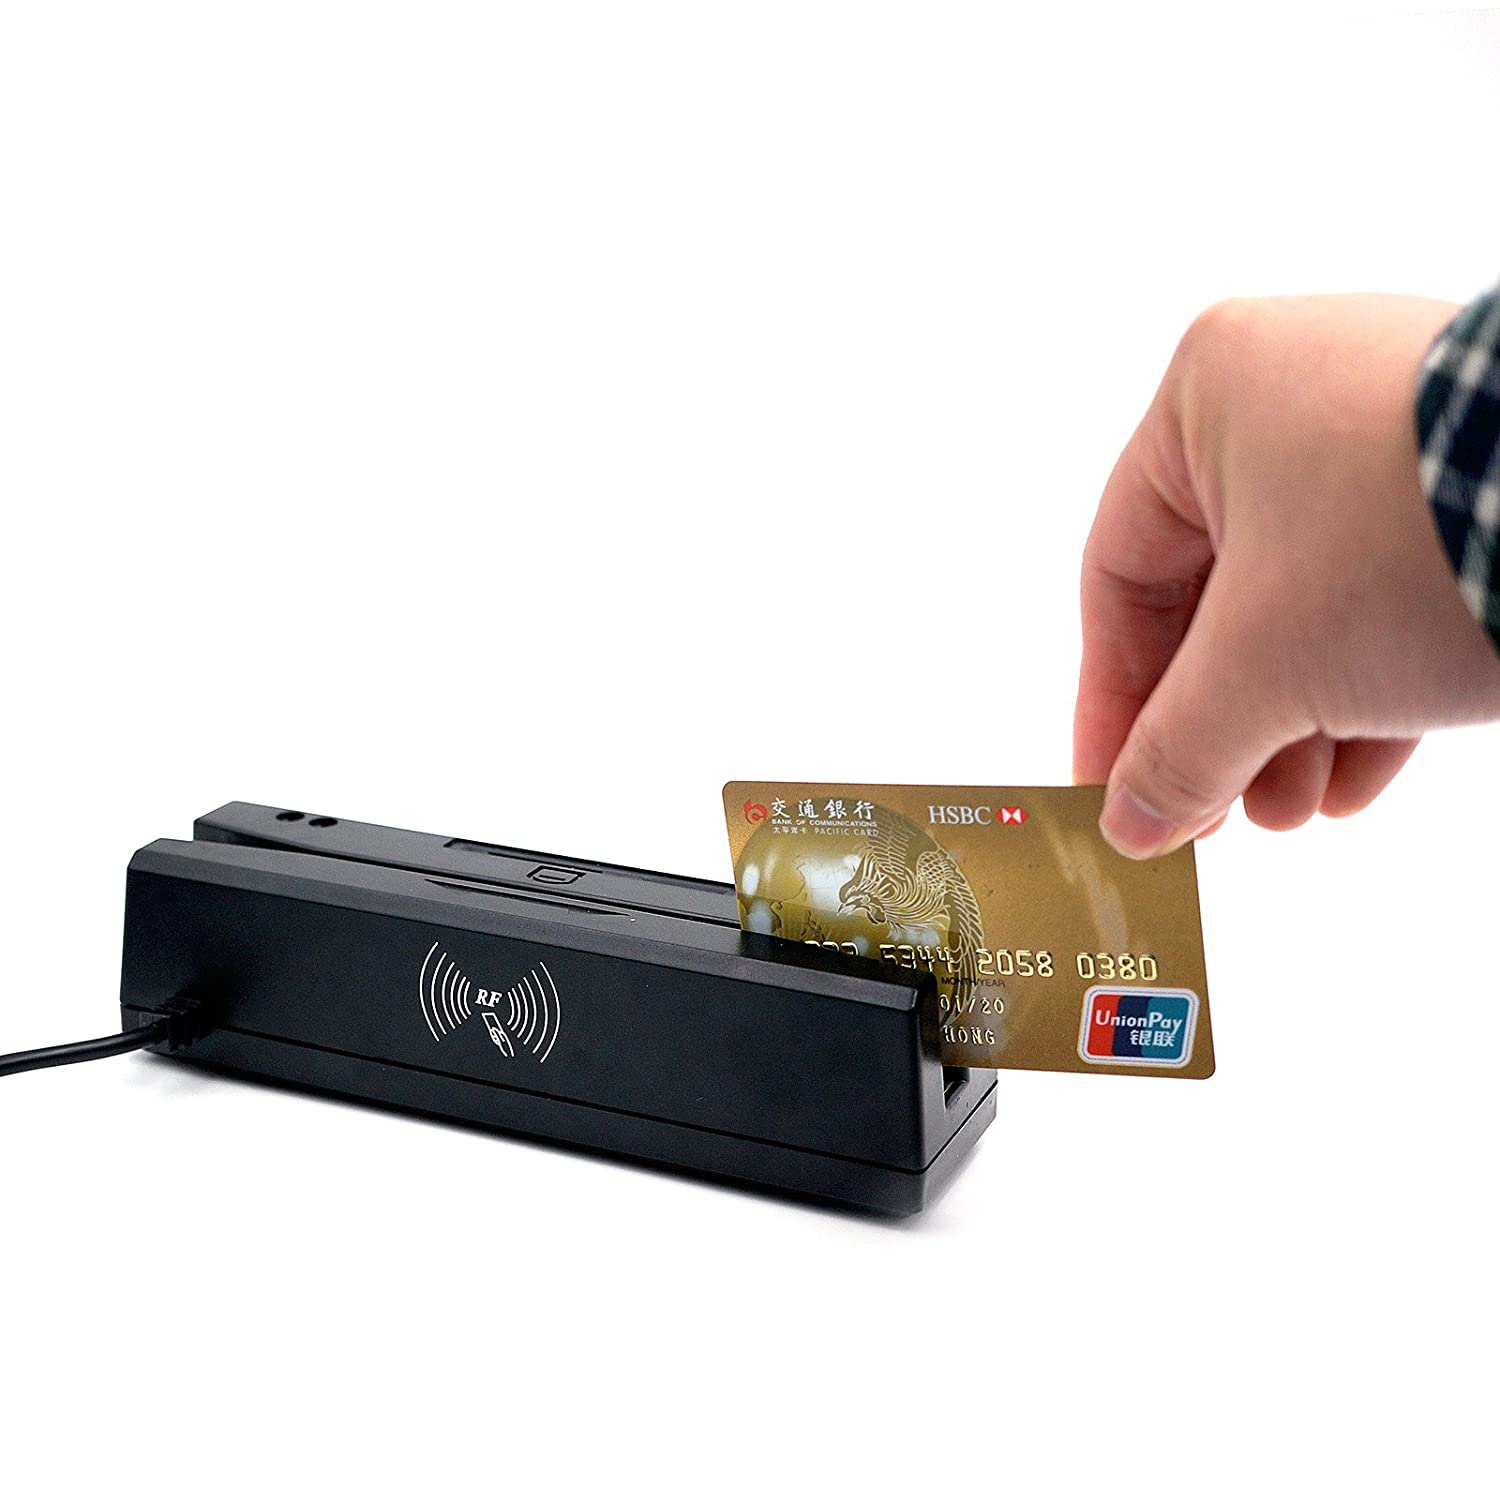 zcs160 4 in 1 magnetic credit card reader writer ic